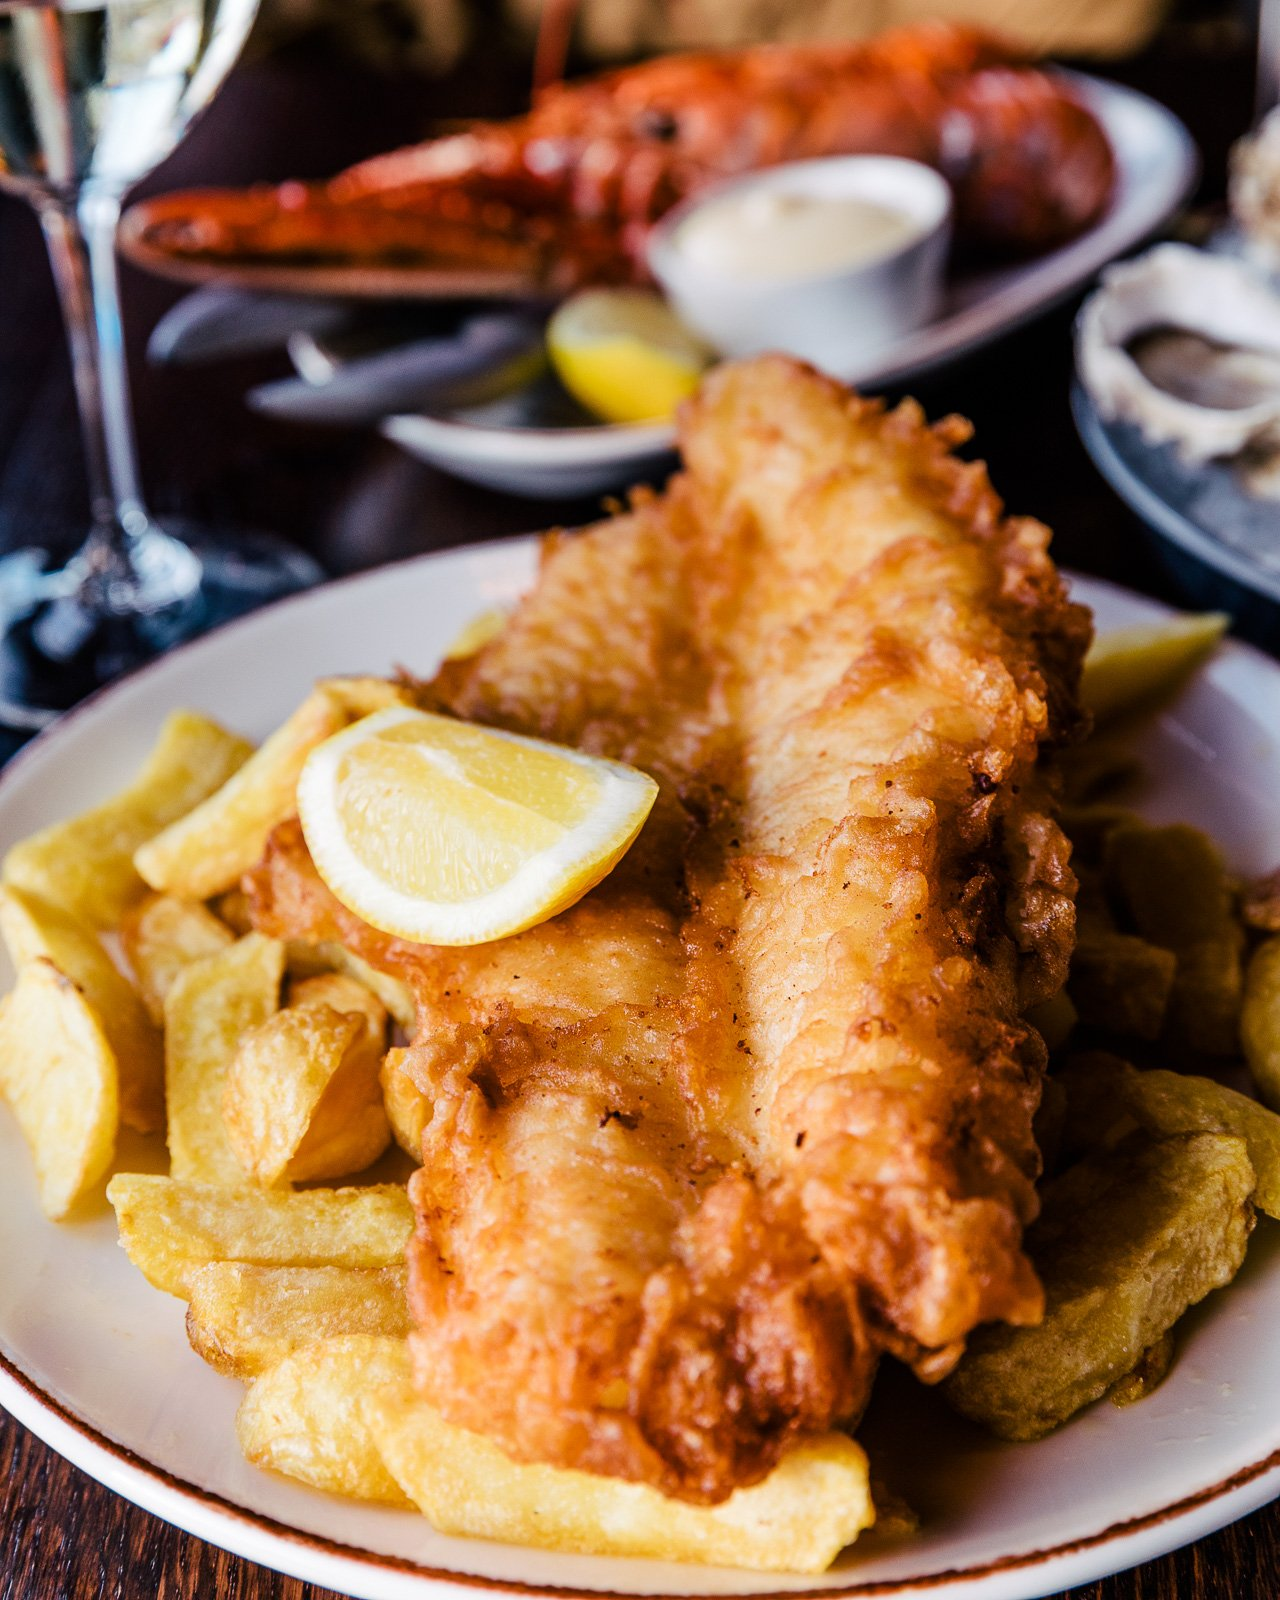 Fish & Chips from Newhaven Fish Market | Edinburgh Travel Guide by HonestlyYUM